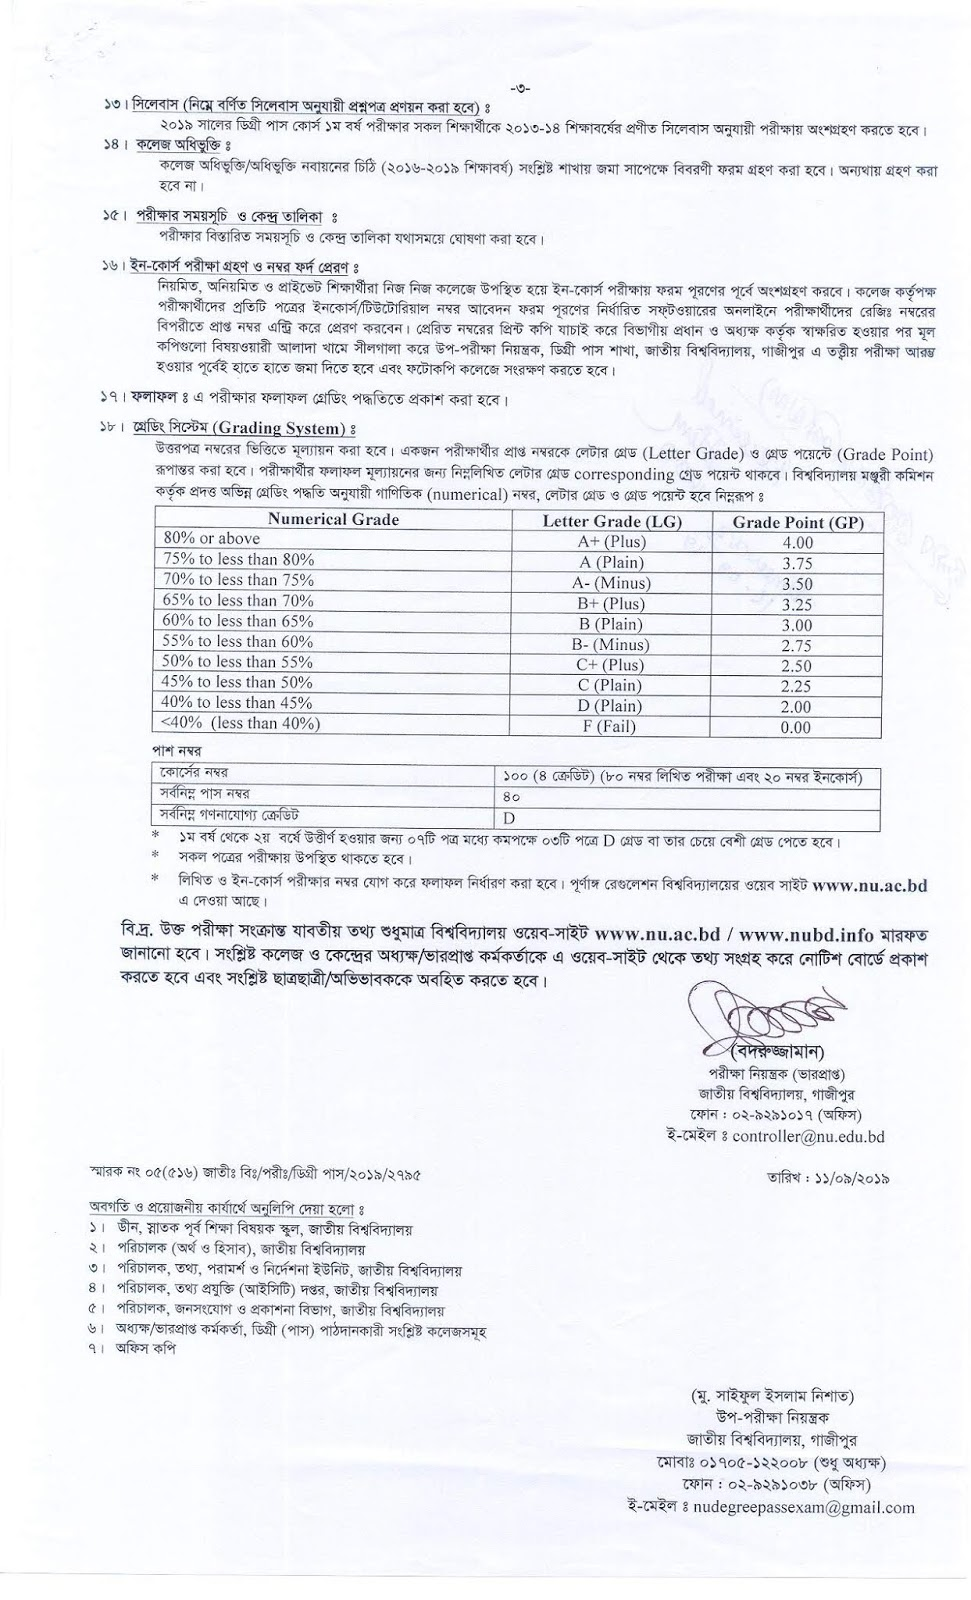 Nu ac bd Degree 1st Year Form Fill-up 2019 Notice | edu bd news